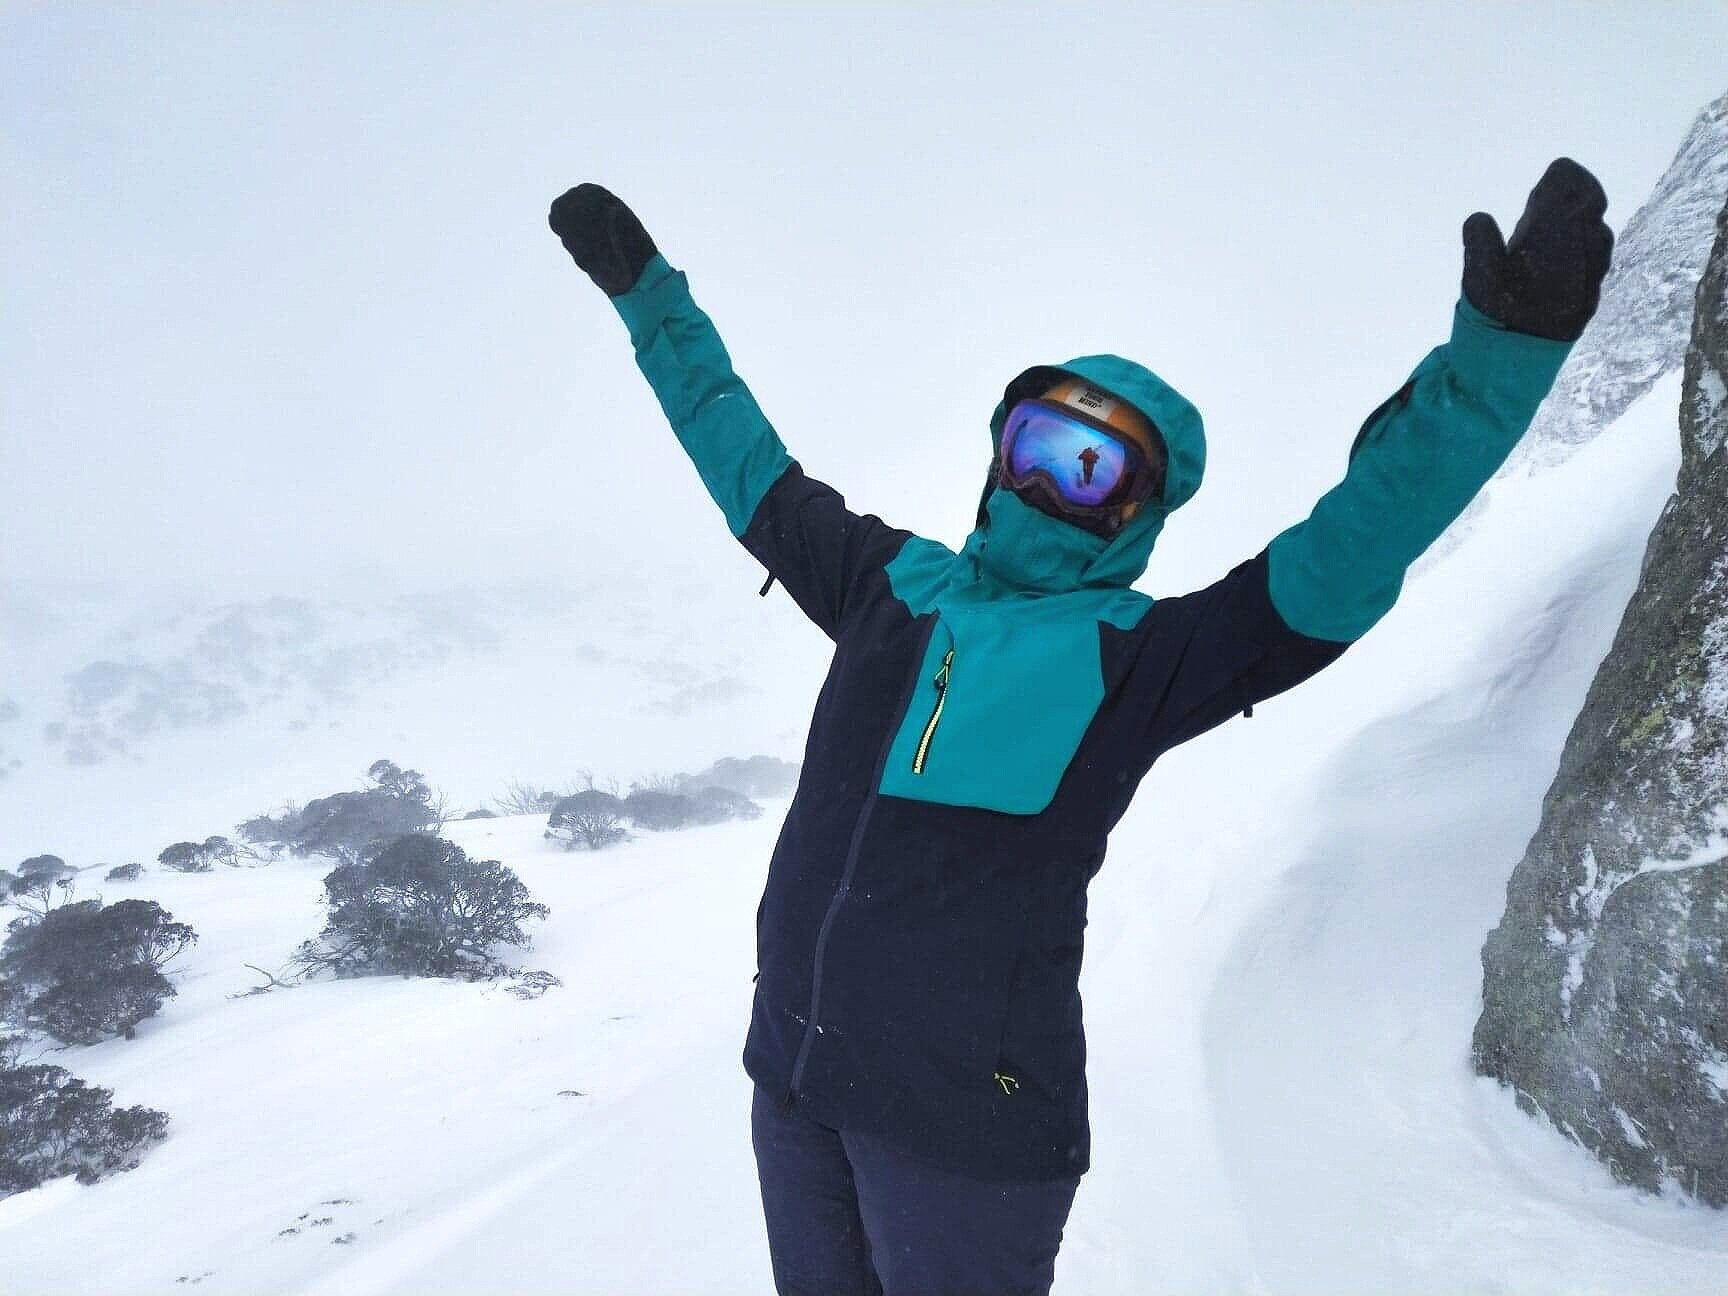 Powder day at Perisher, NSW (I'm smiling in case you can't tell)